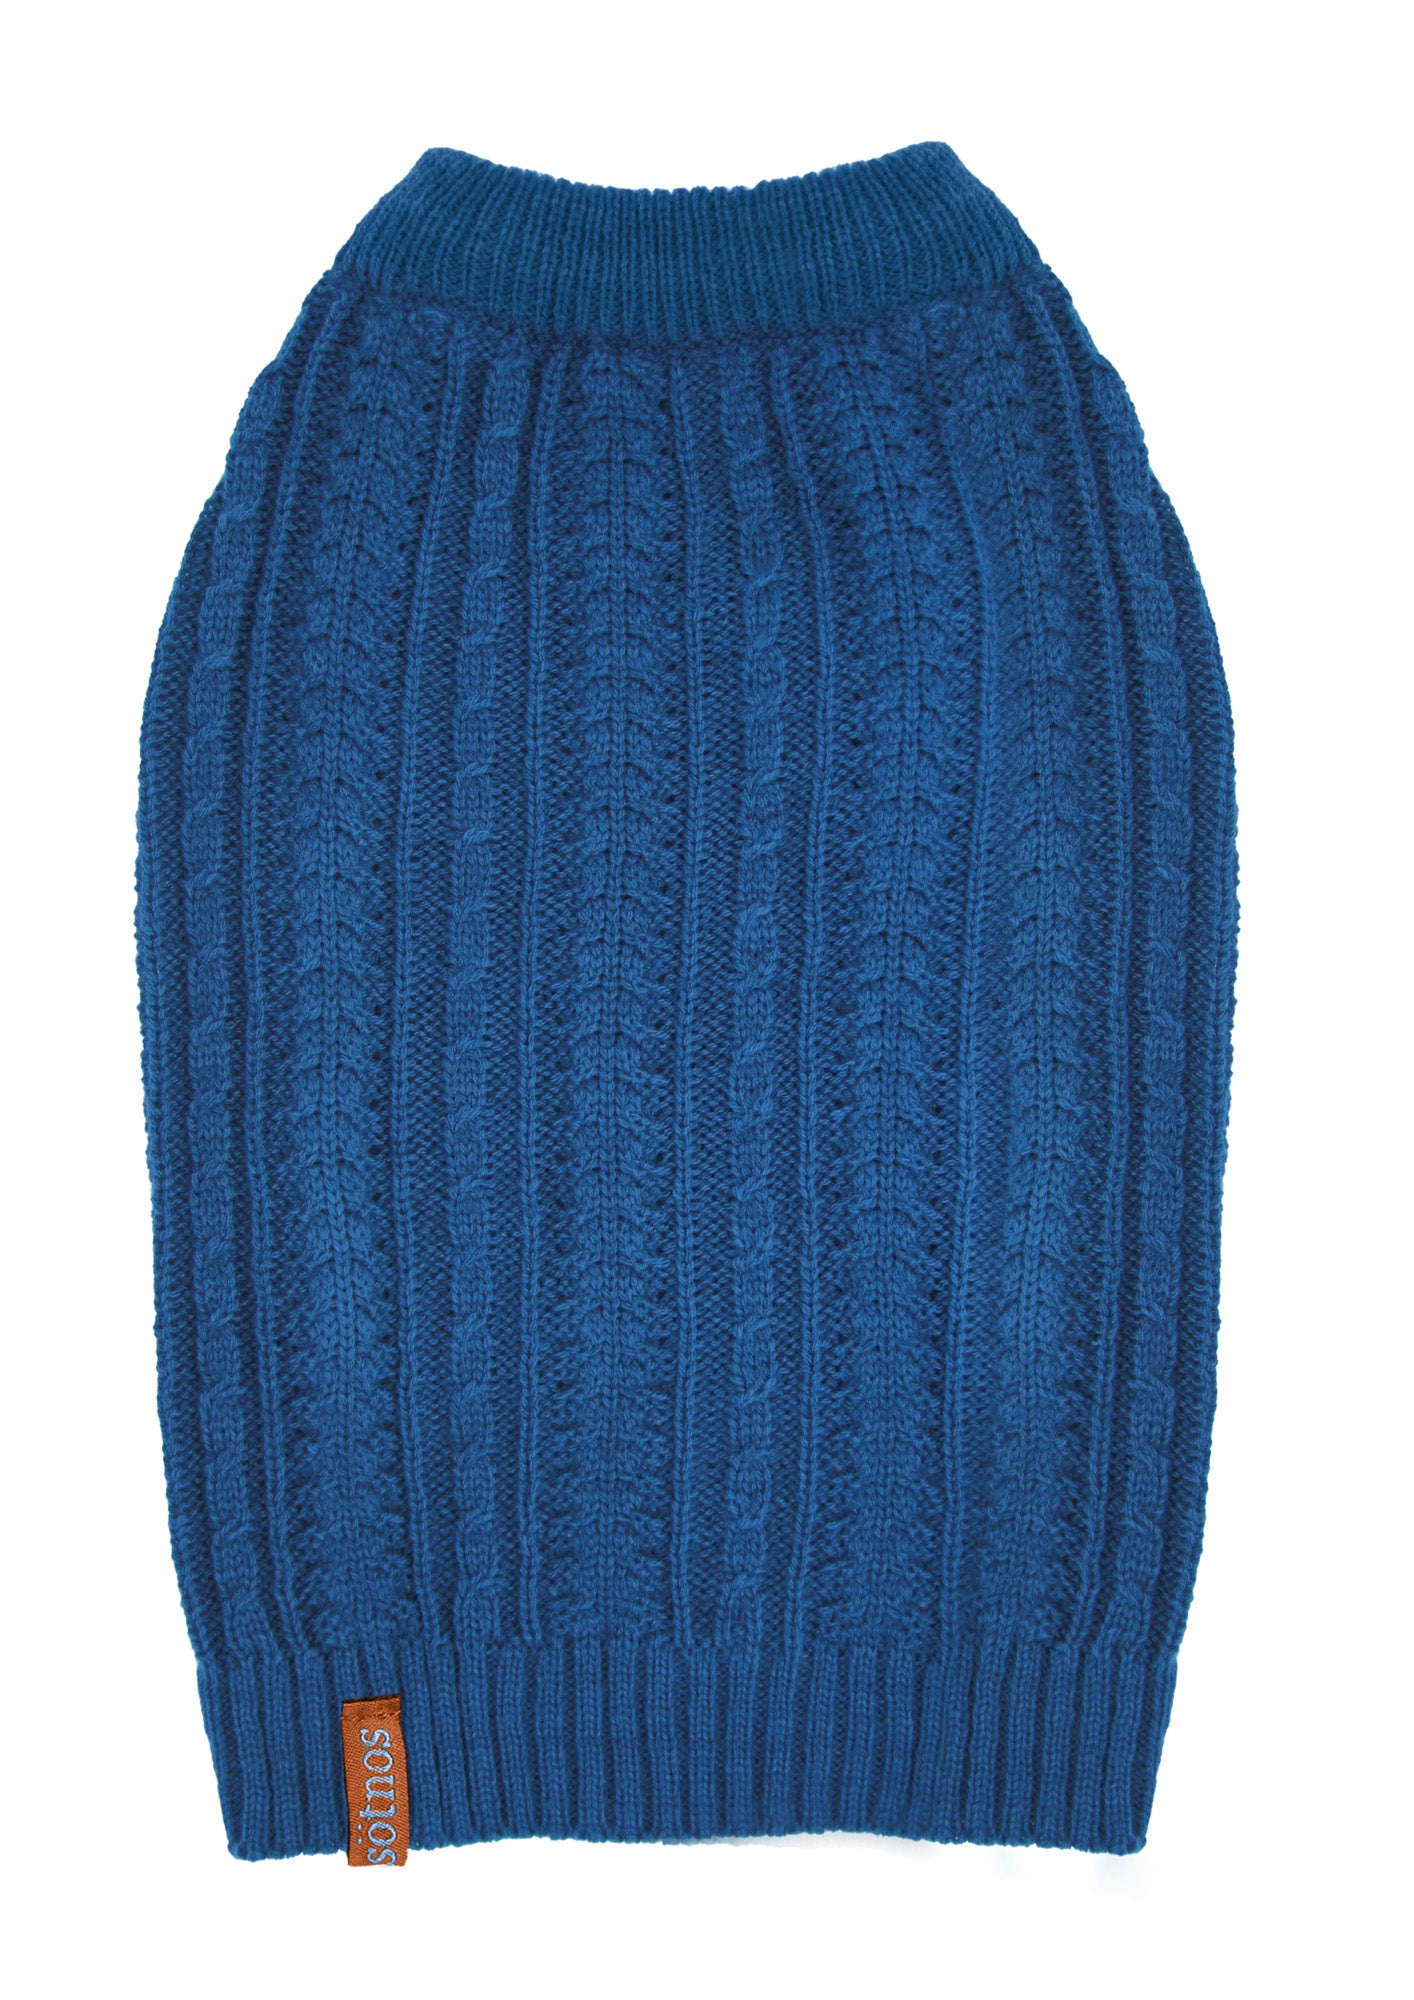 Sotnos Teal Cable Knit Dog Sweater/Jumper